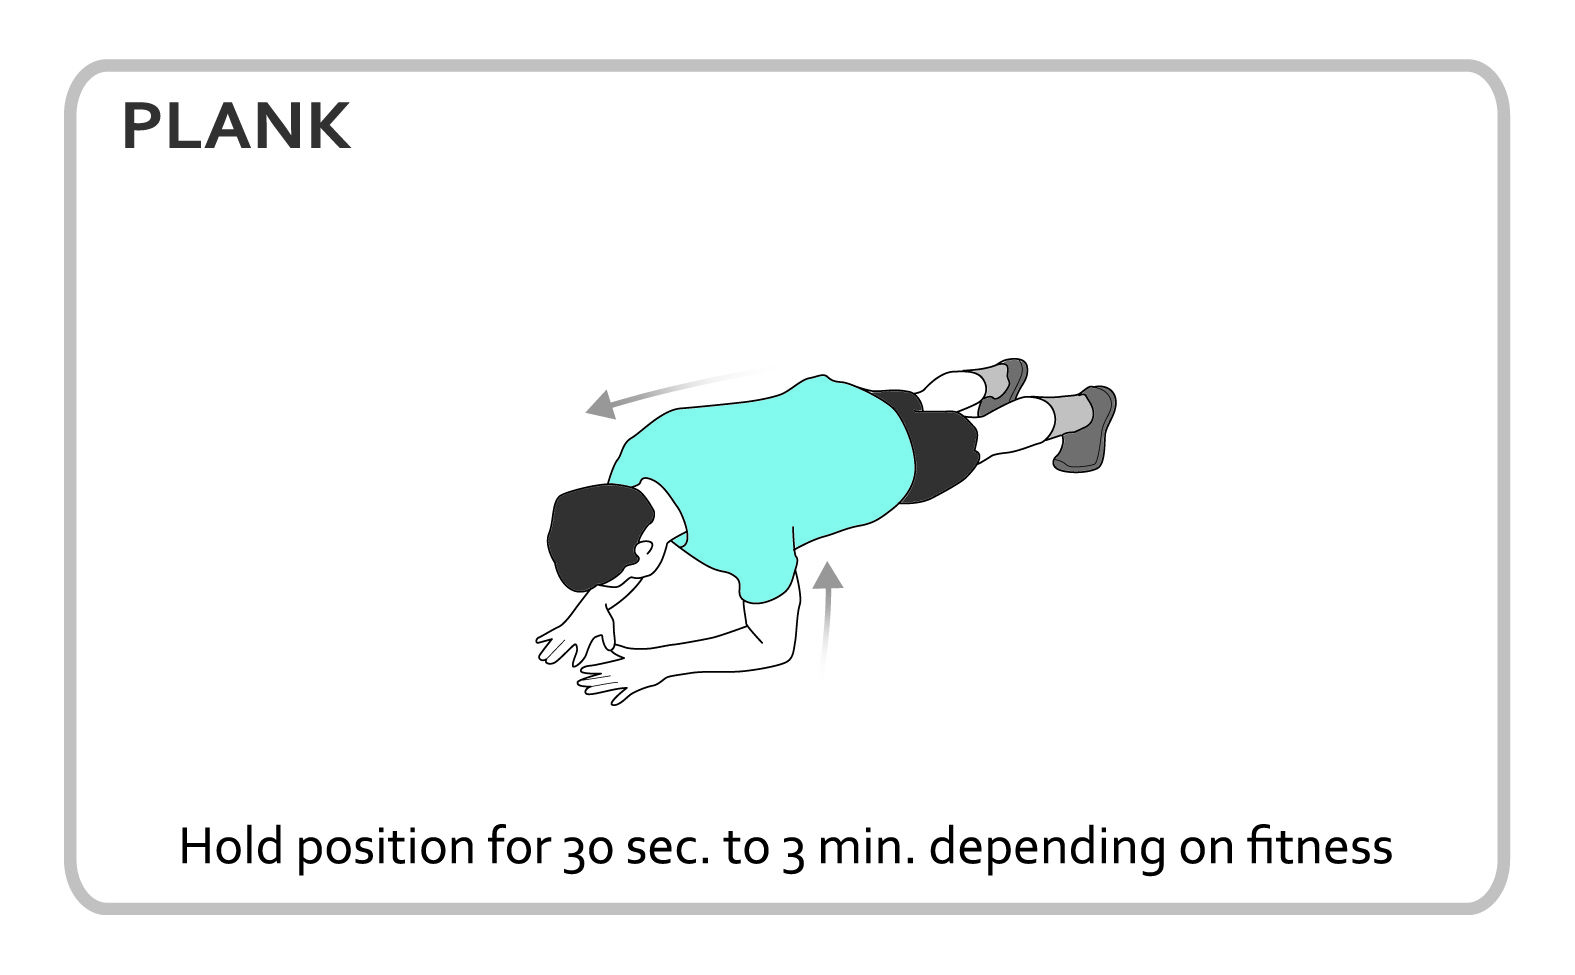 Plank exercise diagram, core, personal fitness workout   Personal ...